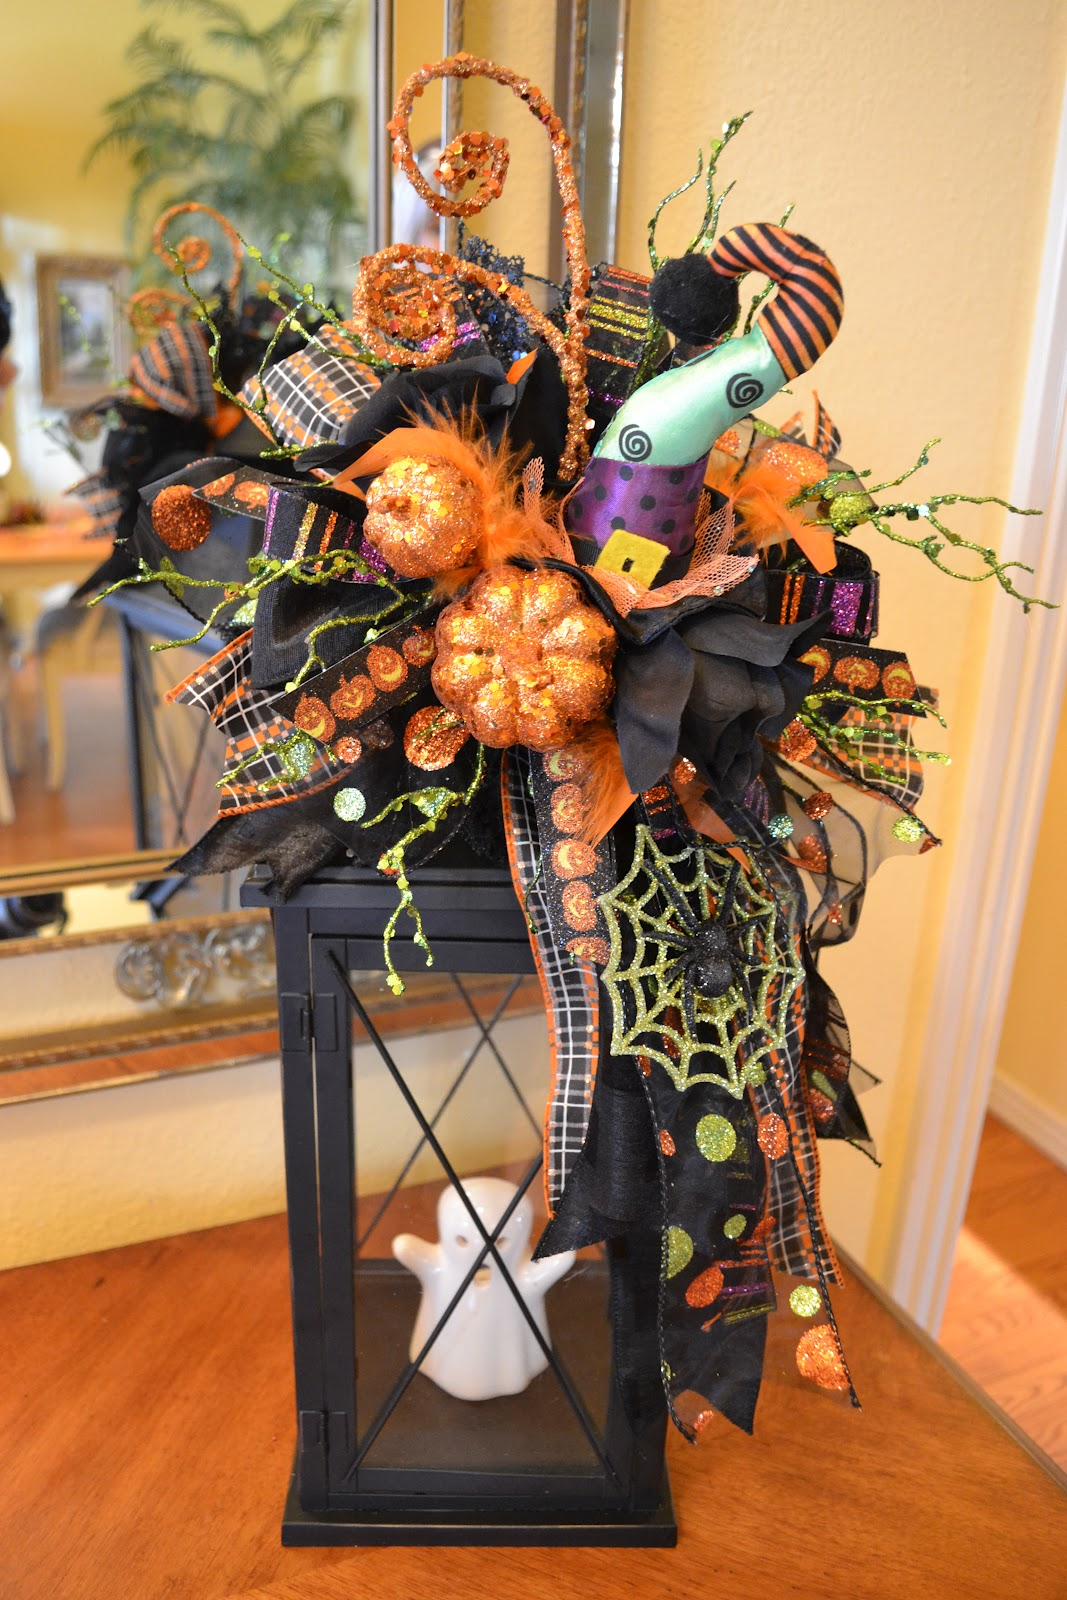 Kristens Creations Fun And Whimsical Halloween Lantern Swag